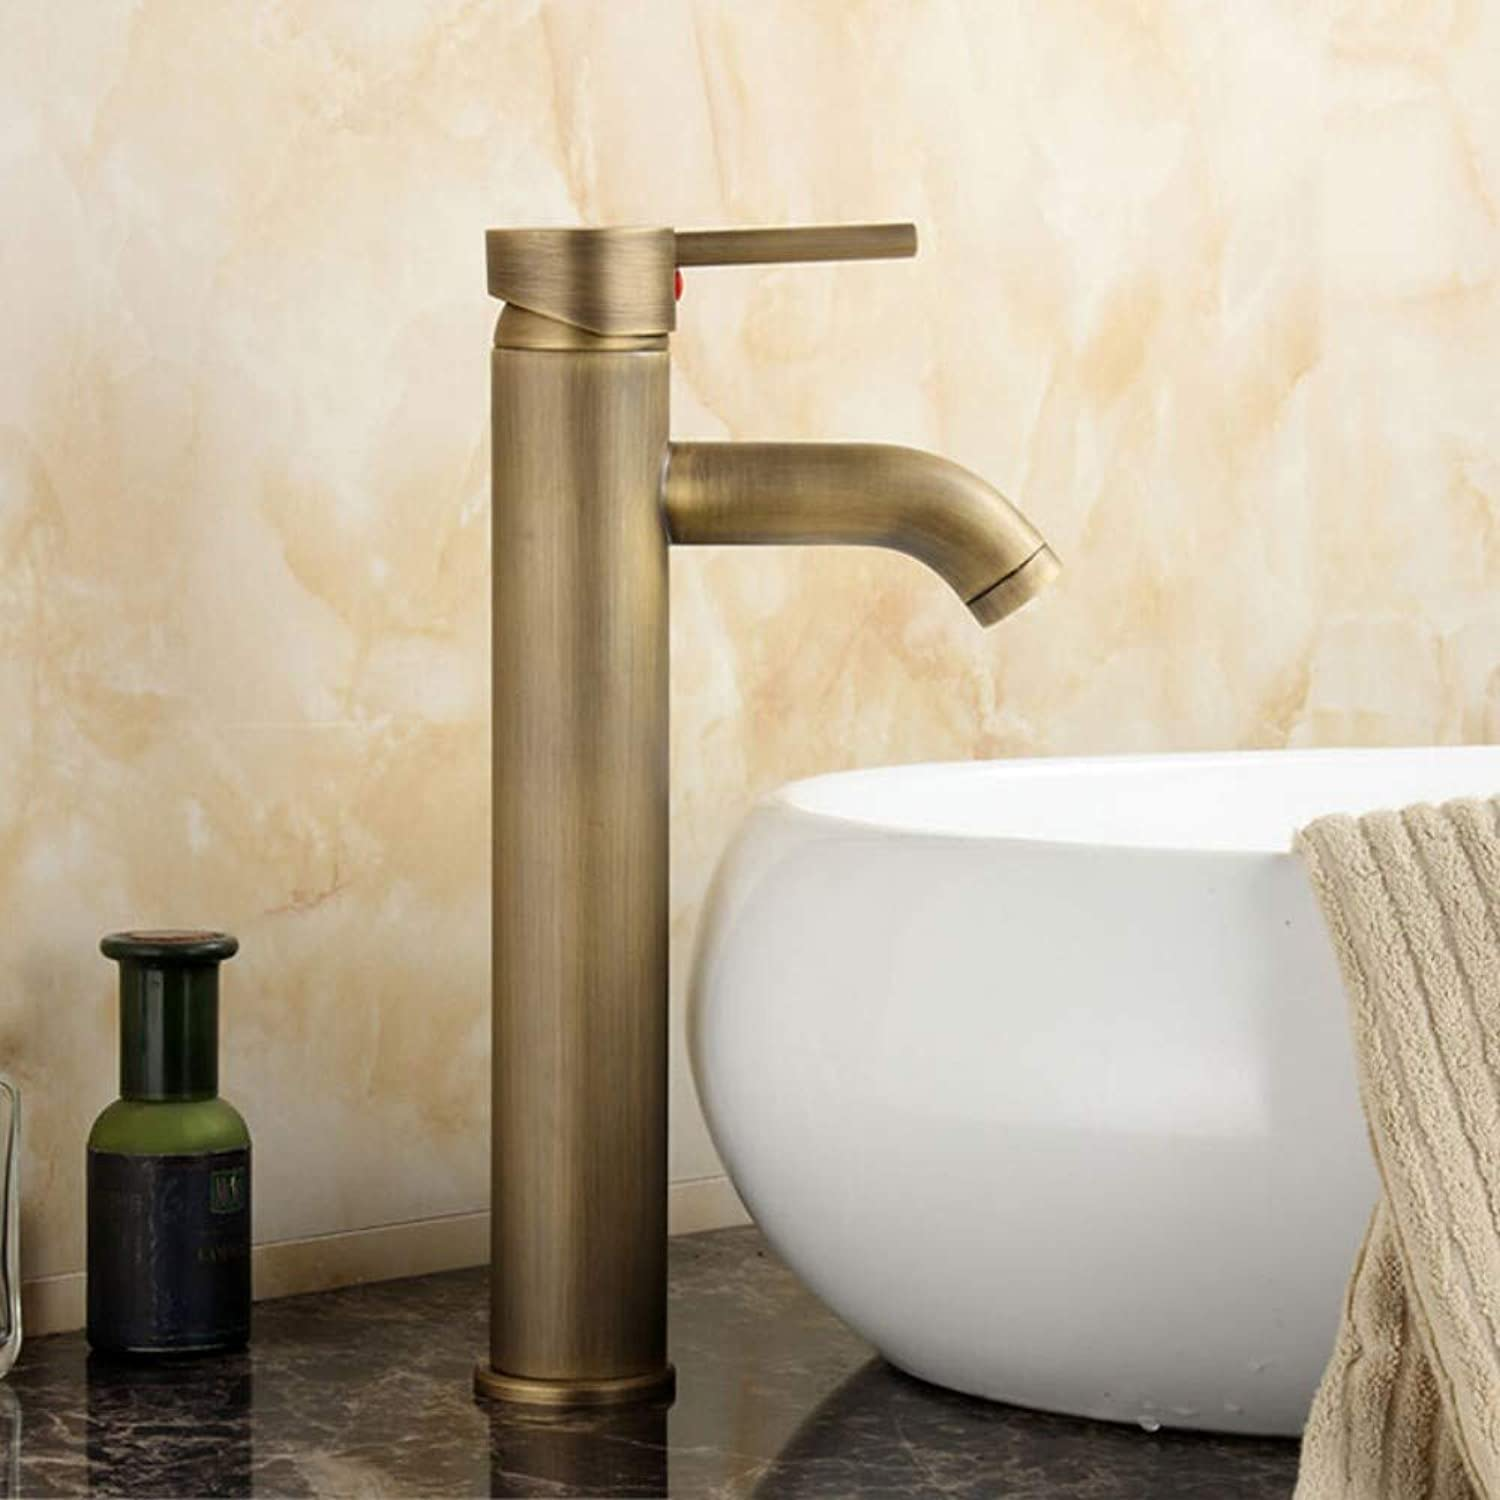 Kitchen Sink Taps Bathroom Sink Taps Inssizetion Type Deck MountedBr  Number Of Handles Single HandleBr  Type Ceramic Plate SpoolBr  Valve Core Material CeramicBr  Faucet Mount Single Hole